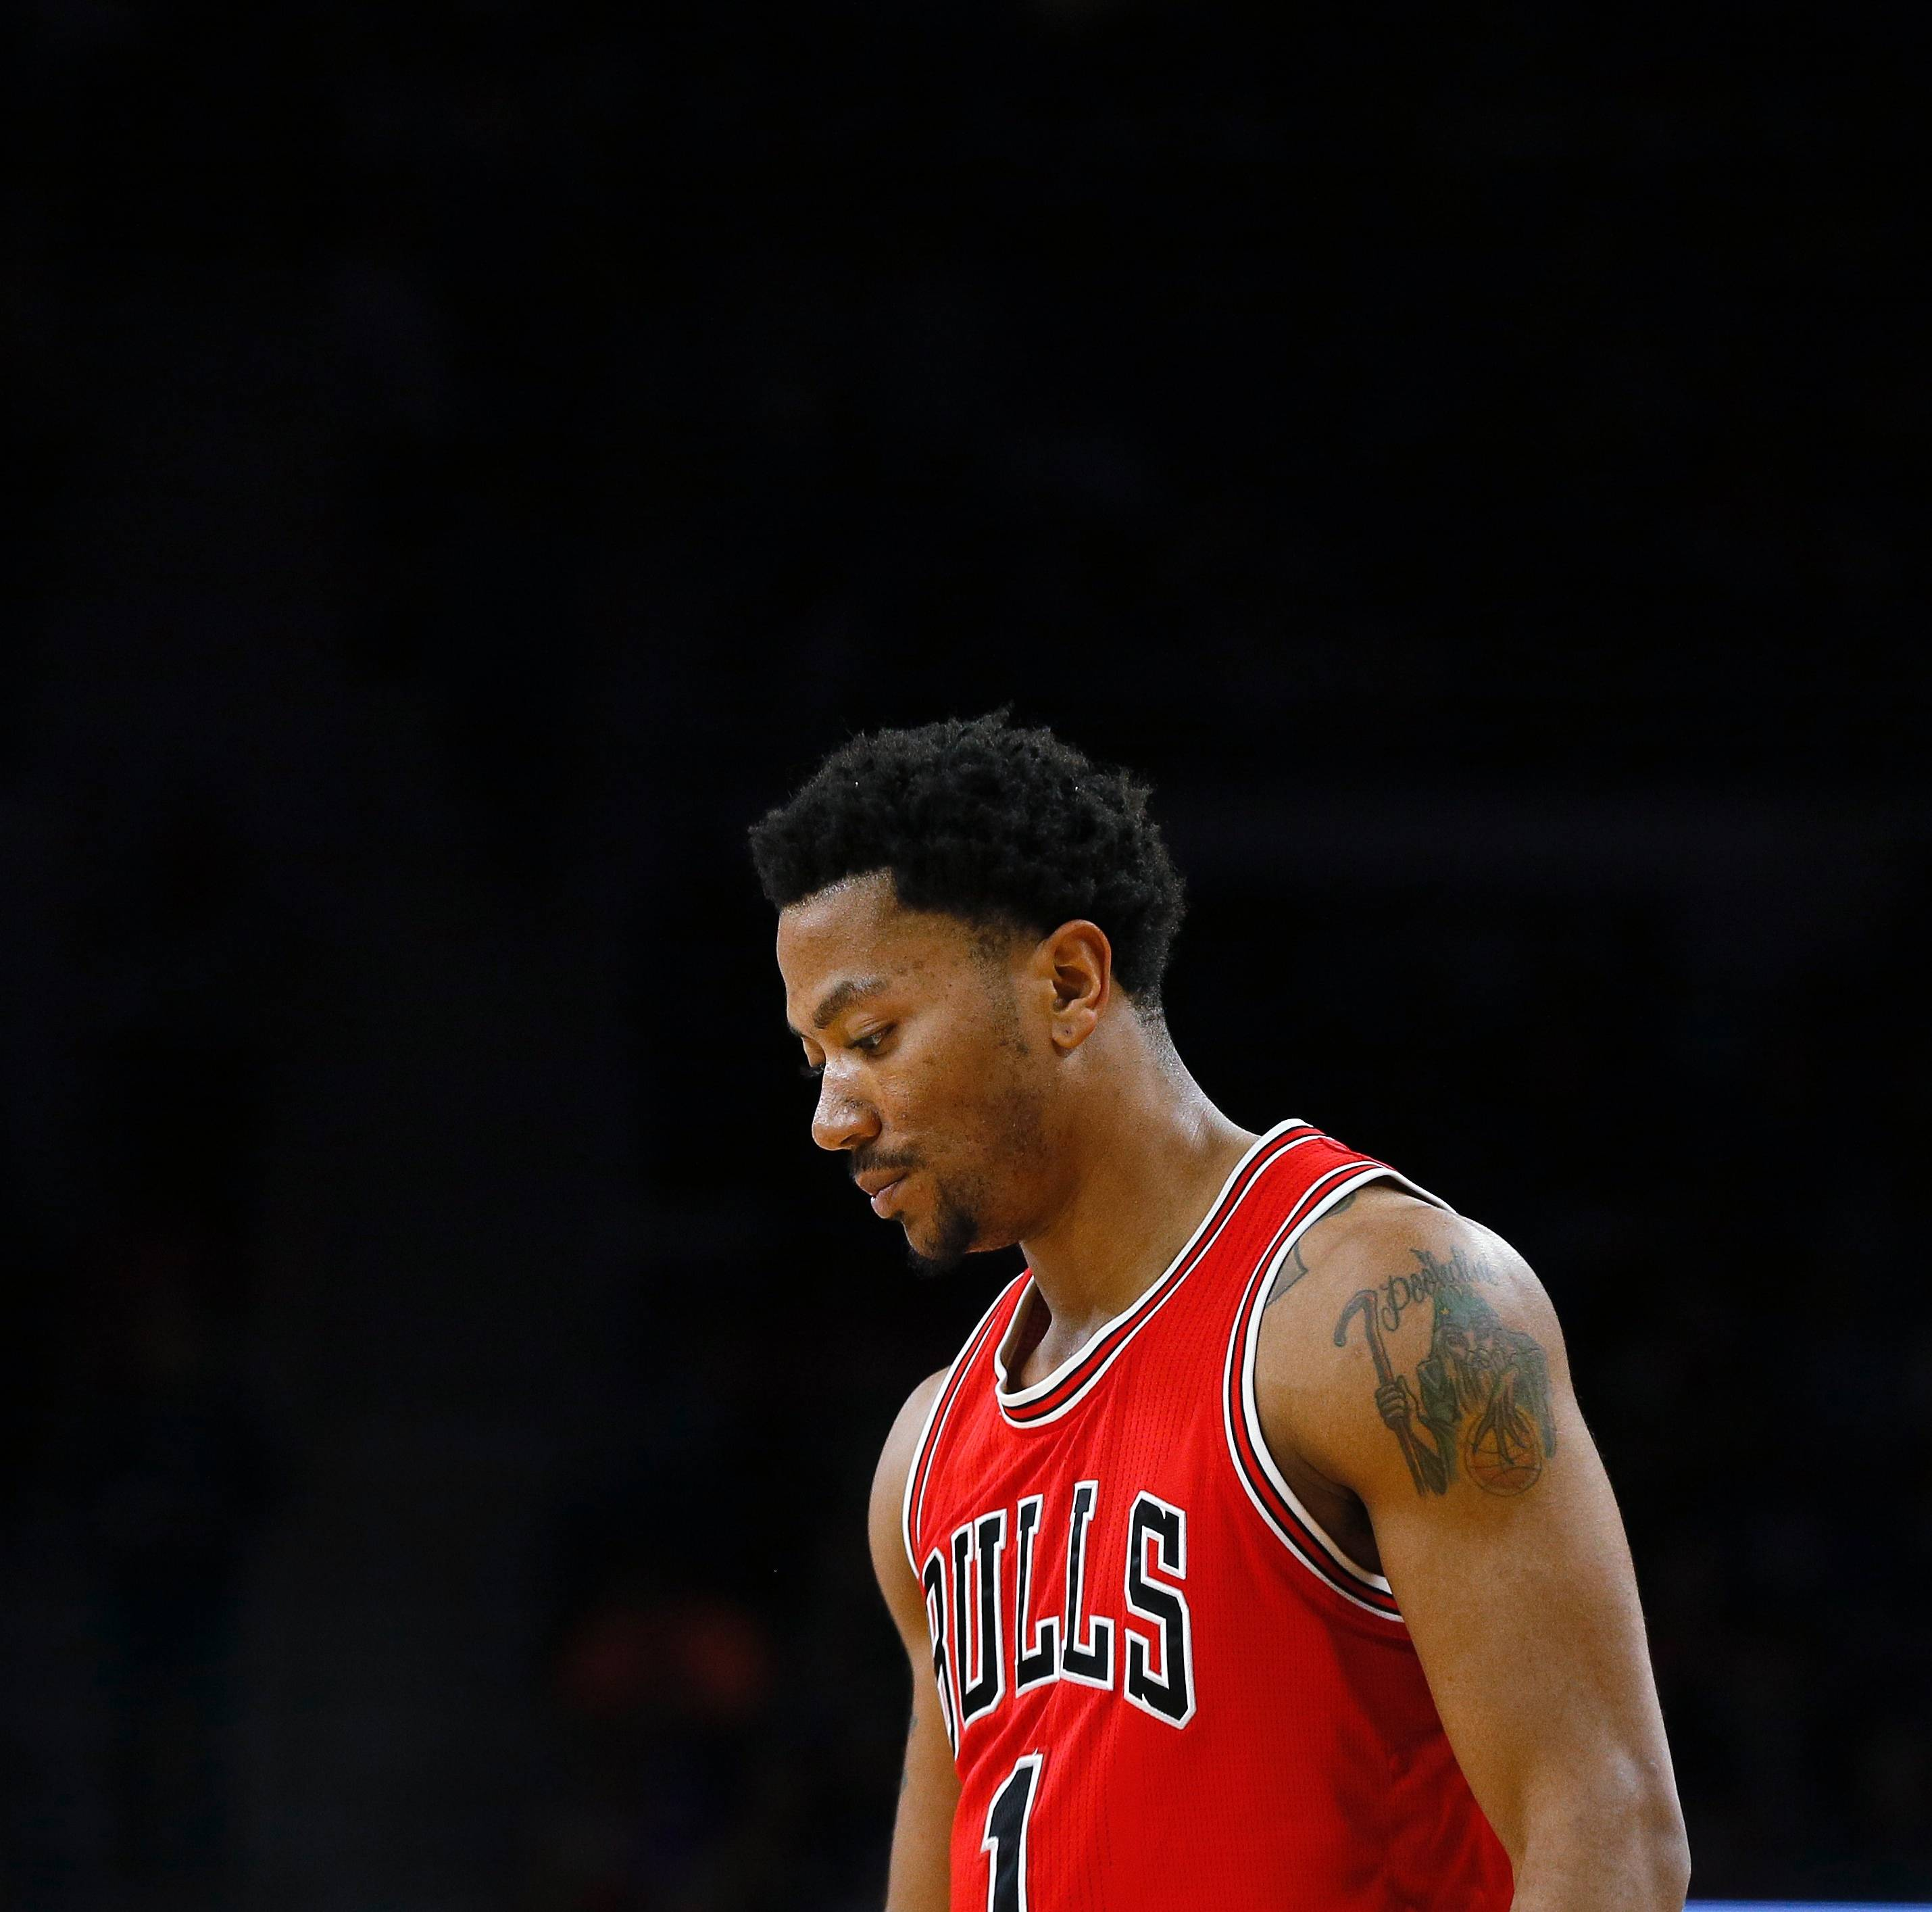 Thibodeau on Rose: Unfair -- the guy has been through so much